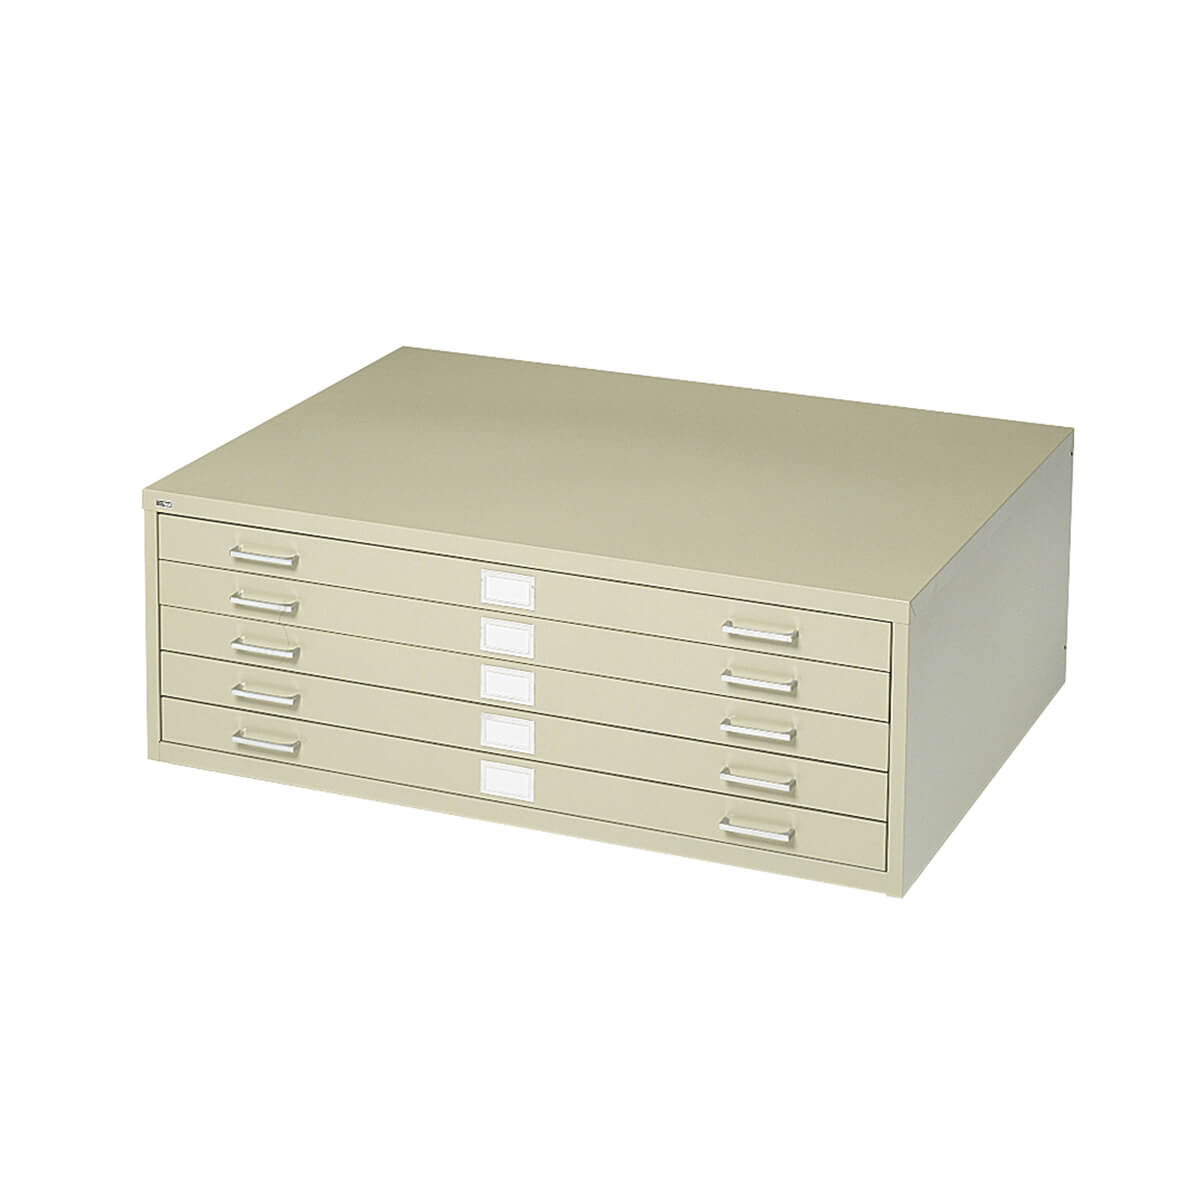 Safco Flat Files